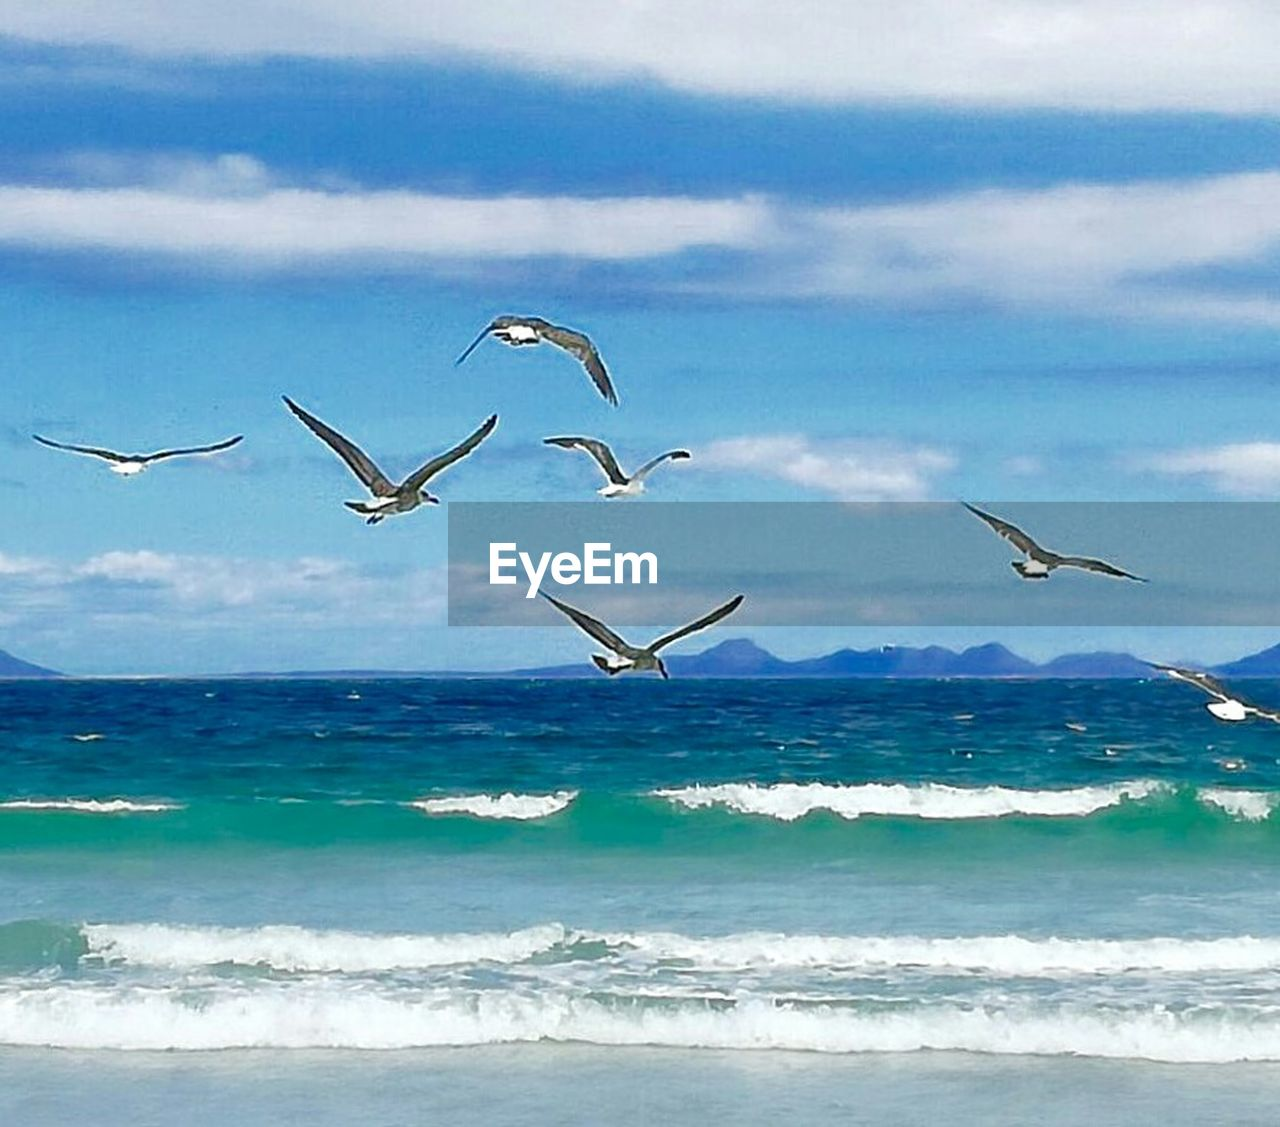 sea, animals in the wild, nature, flying, bird, water, horizon over water, animal themes, beauty in nature, animal wildlife, scenics, no people, large group of animals, beach, sky, outdoors, day, wave, spread wings, flamingo, mammal